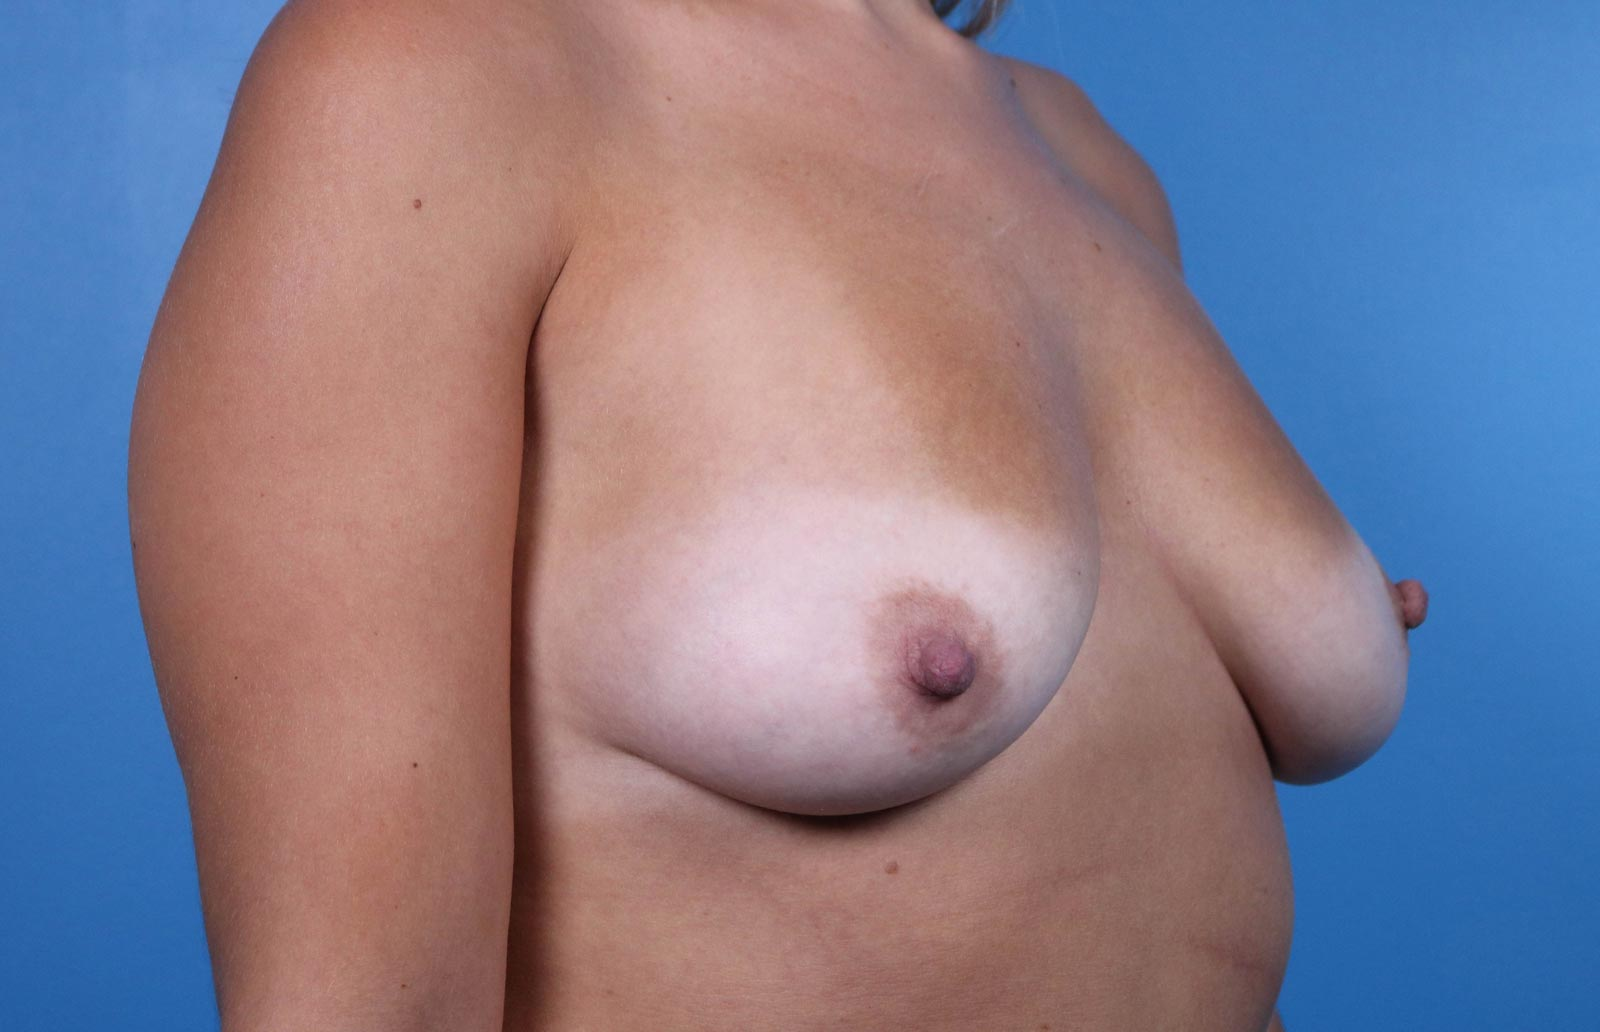 Raleigh breast augmentation before image